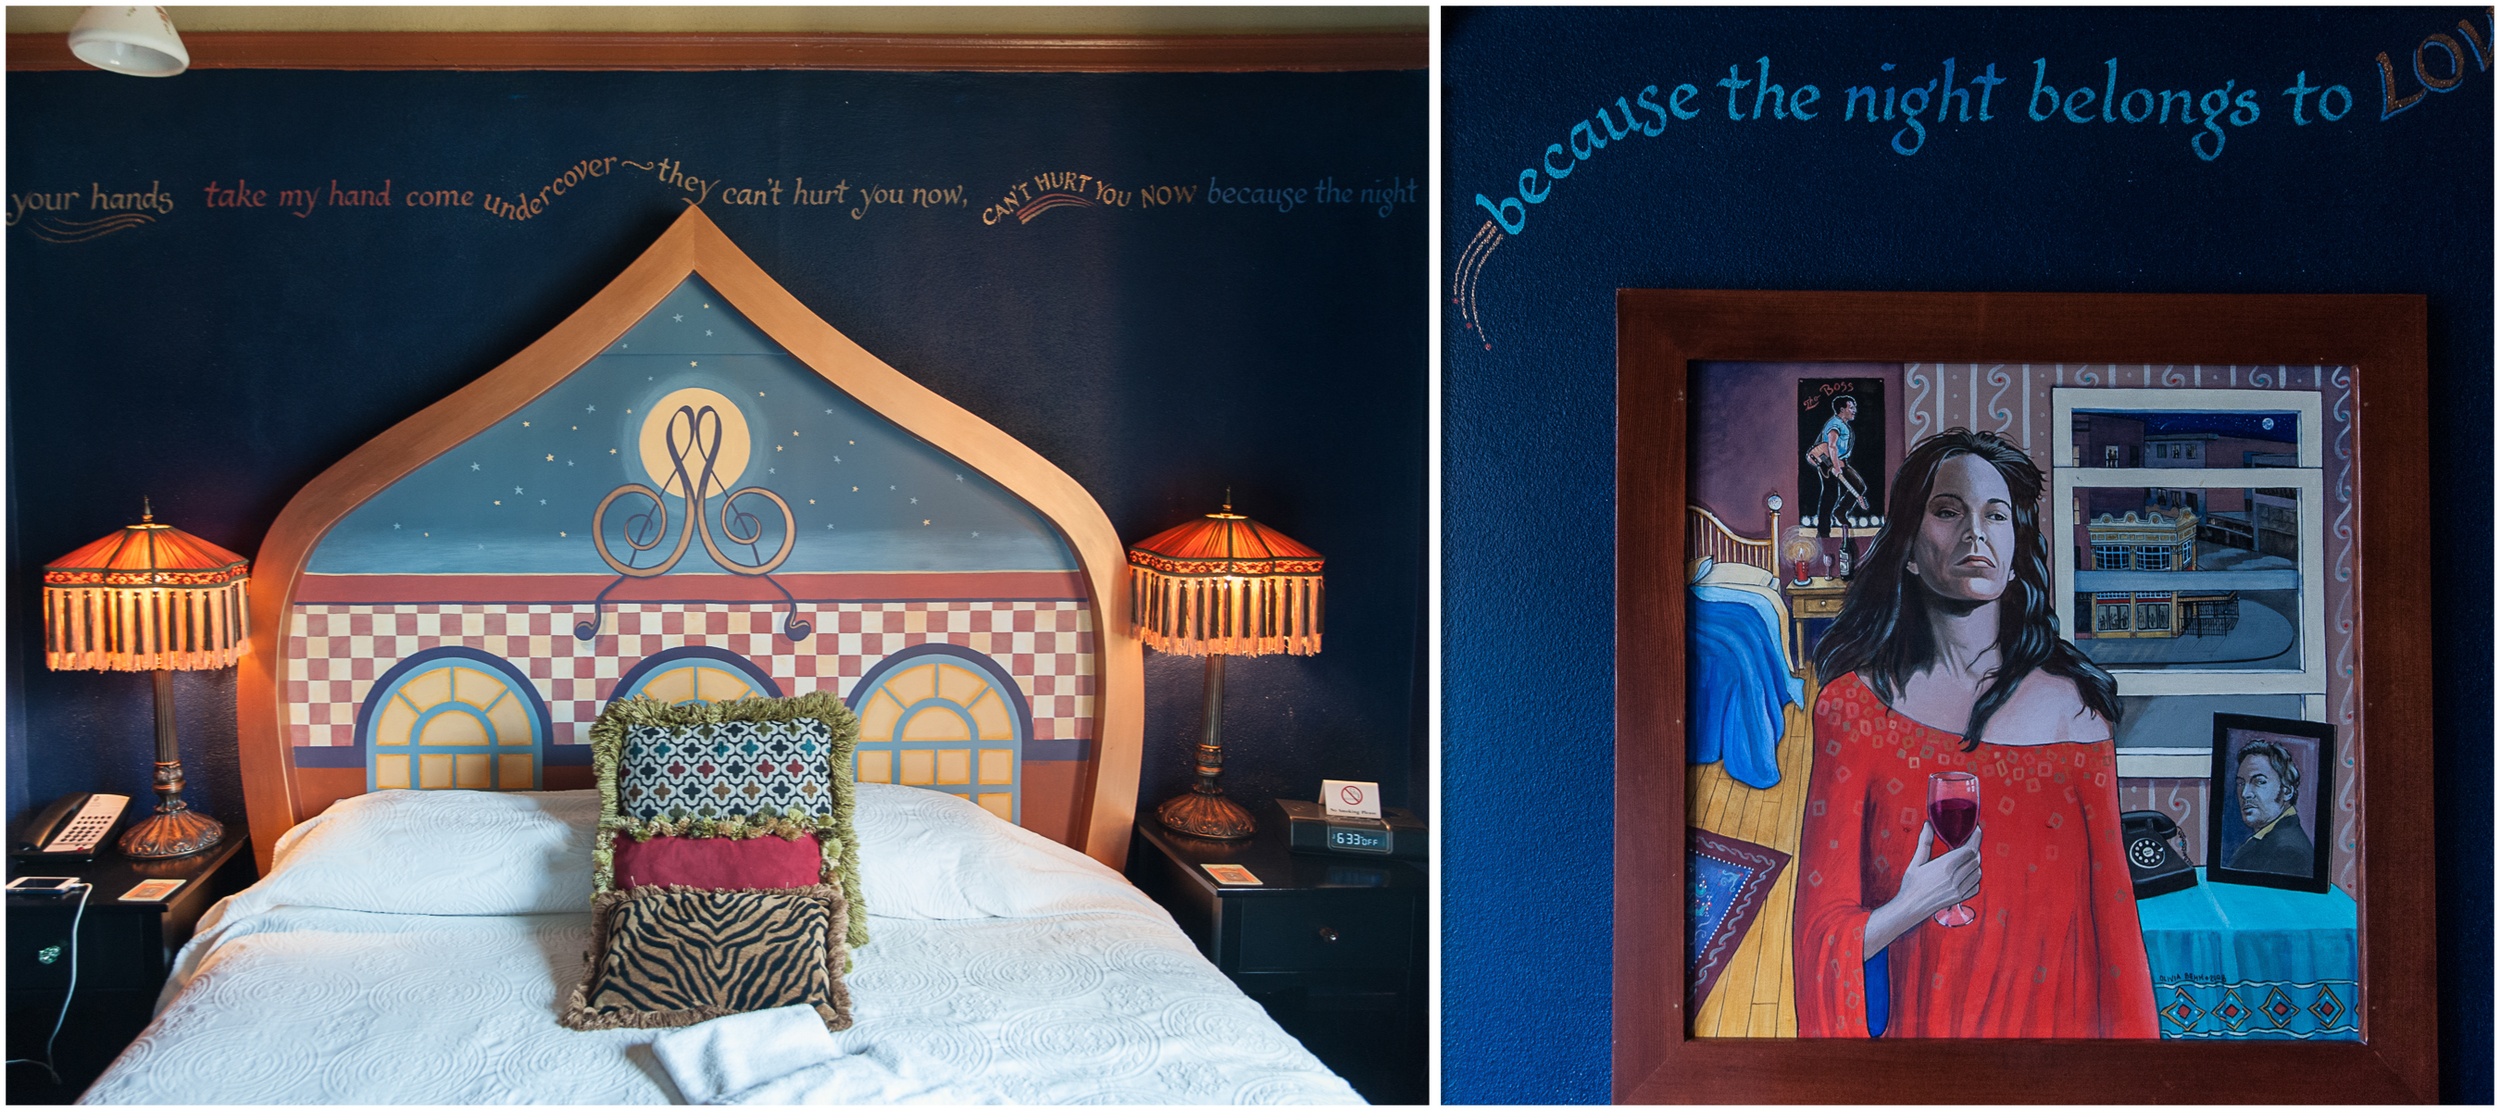 Each room is dedicated to a musical artist or band...we lucked out with Patti Smith's room.